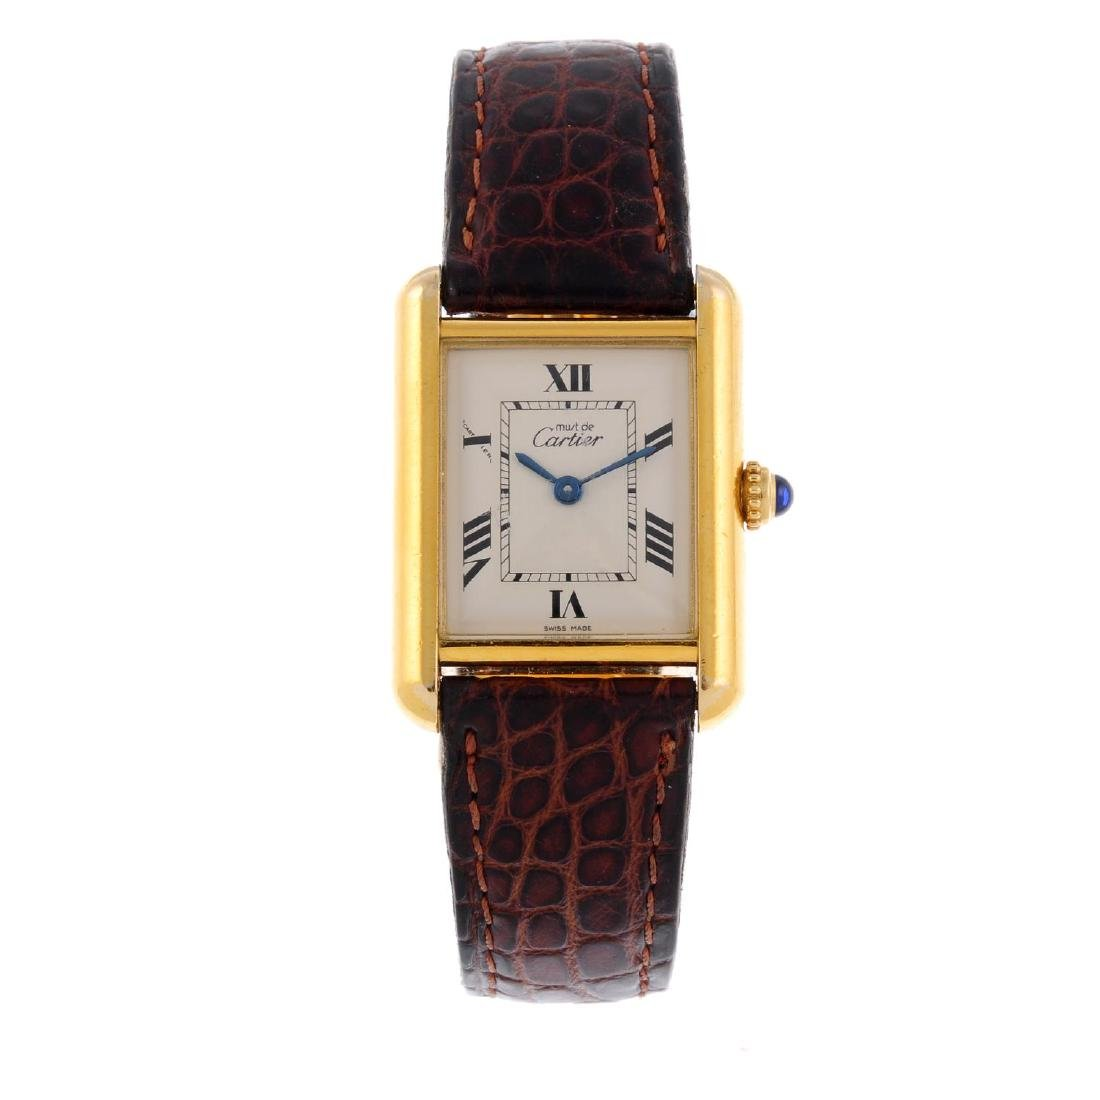 CARTIER - a Must De Cartier Tank wrist watch. Gold